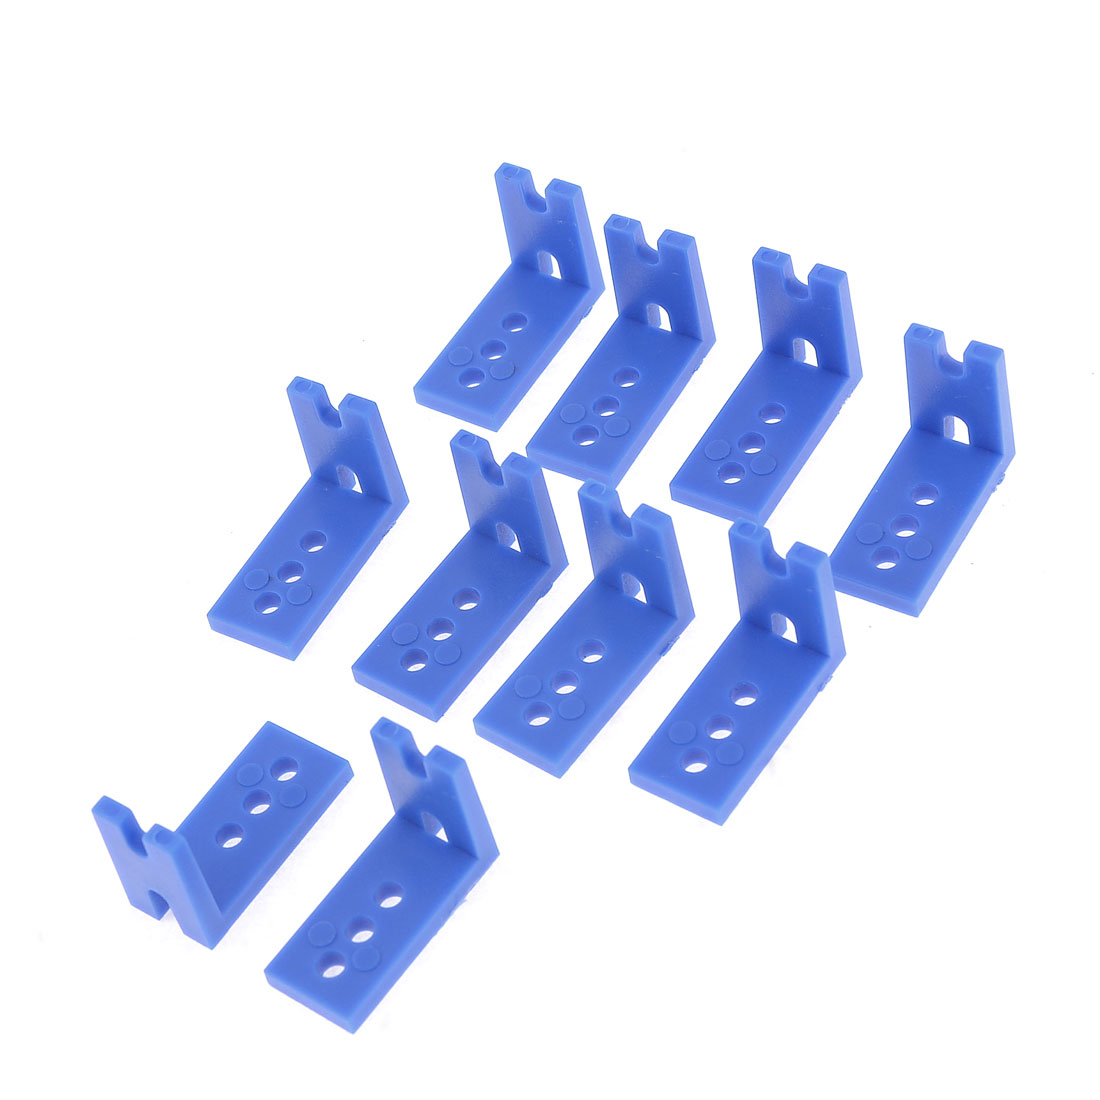 10 Pcs Blue Plastic Robot Model Devices Linking Connecting Angle Brackets